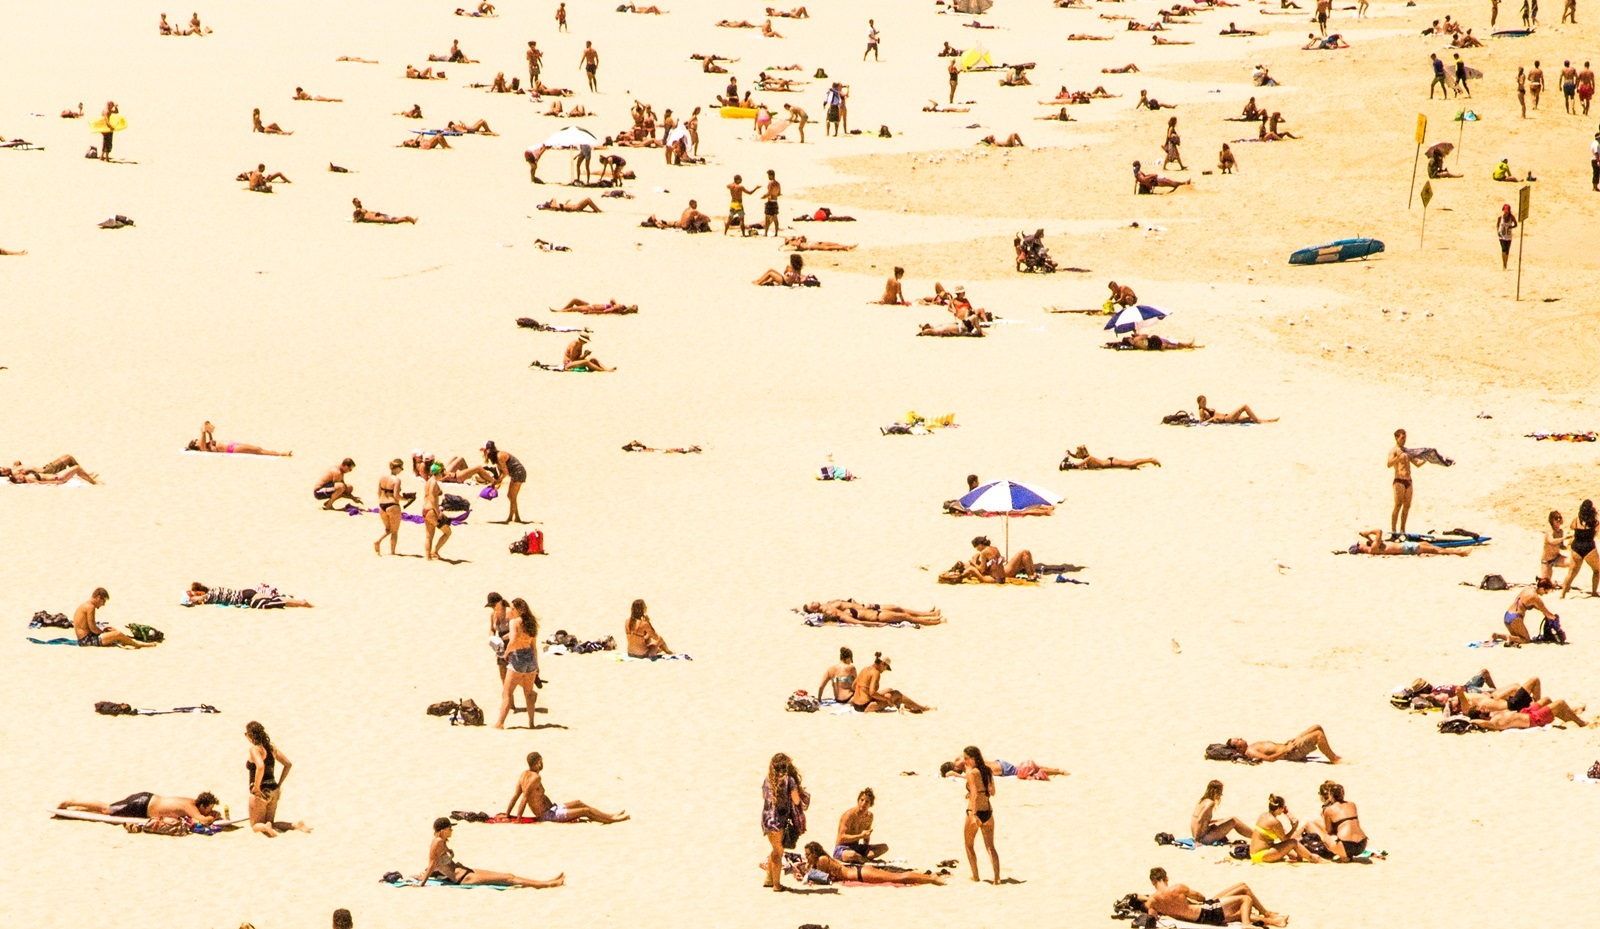 Research: Nudists are happier and more satisfied with life